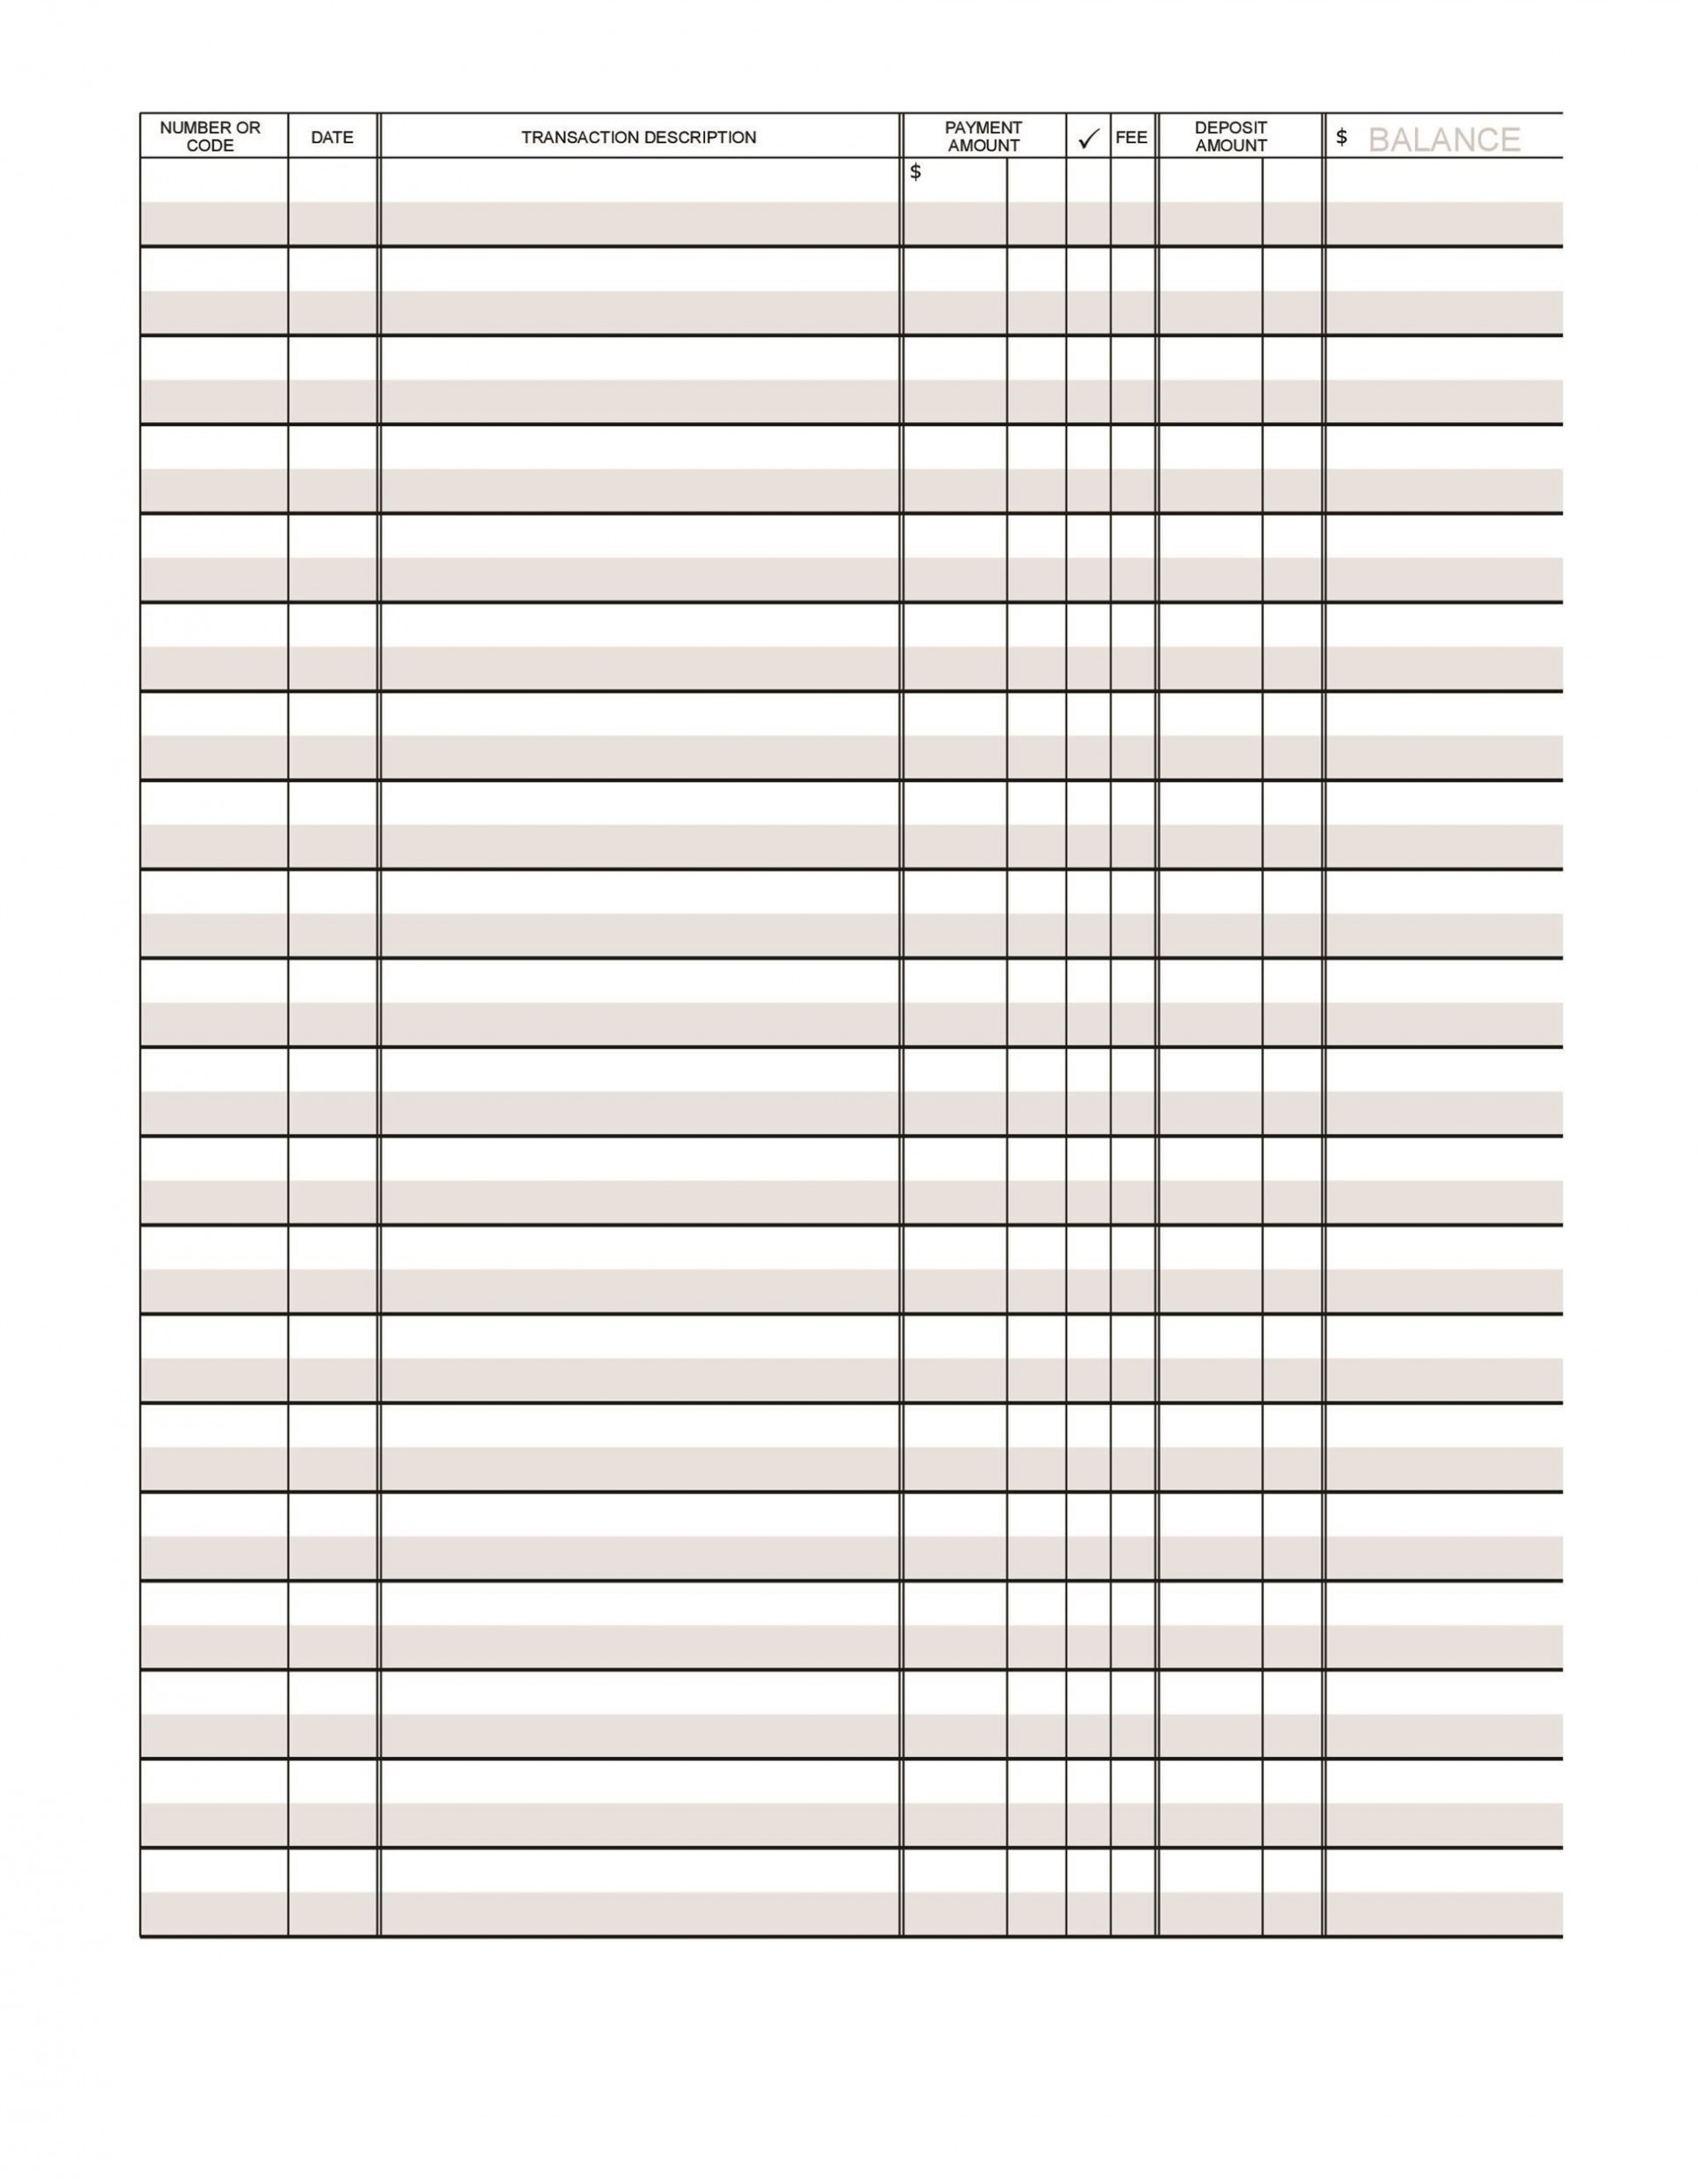 003 Simple Checkbook Register Template Excel High Definition  Check 2007 Balance 20031920